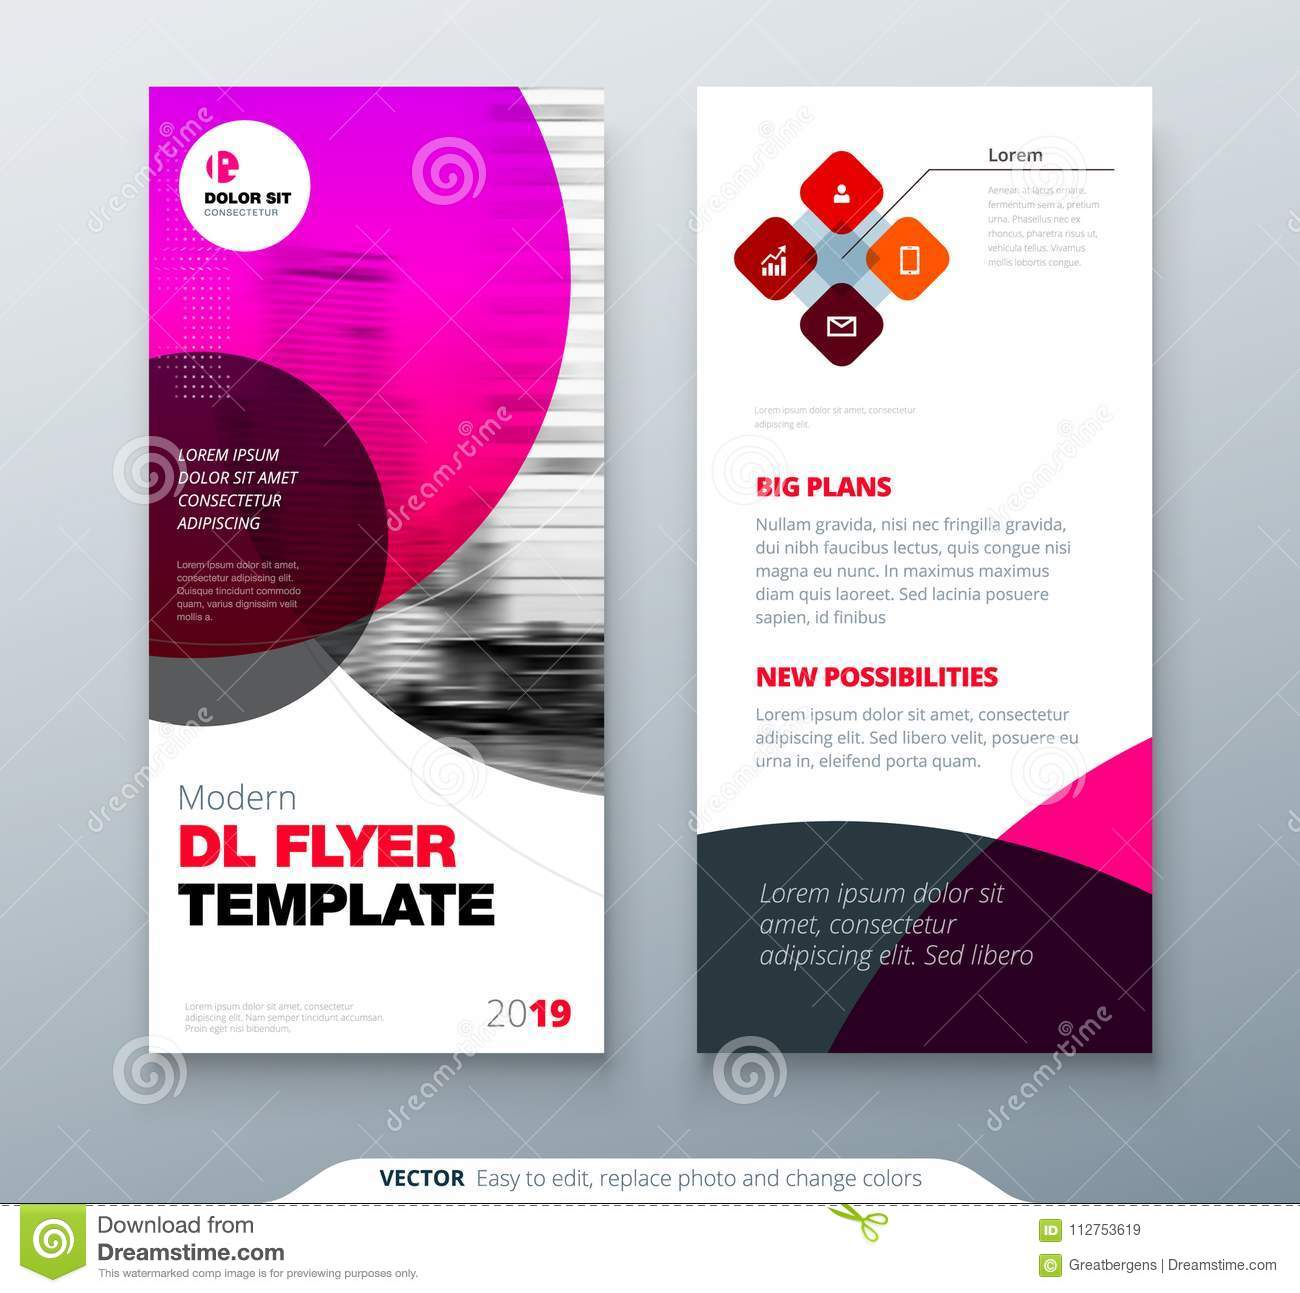 Dl Flyer Design Pink Business Template For Dl Flyer Layout With Modern Circle Photo And Abstract Background Creative Stock Vector Illustration Of Concept Glam 112753619